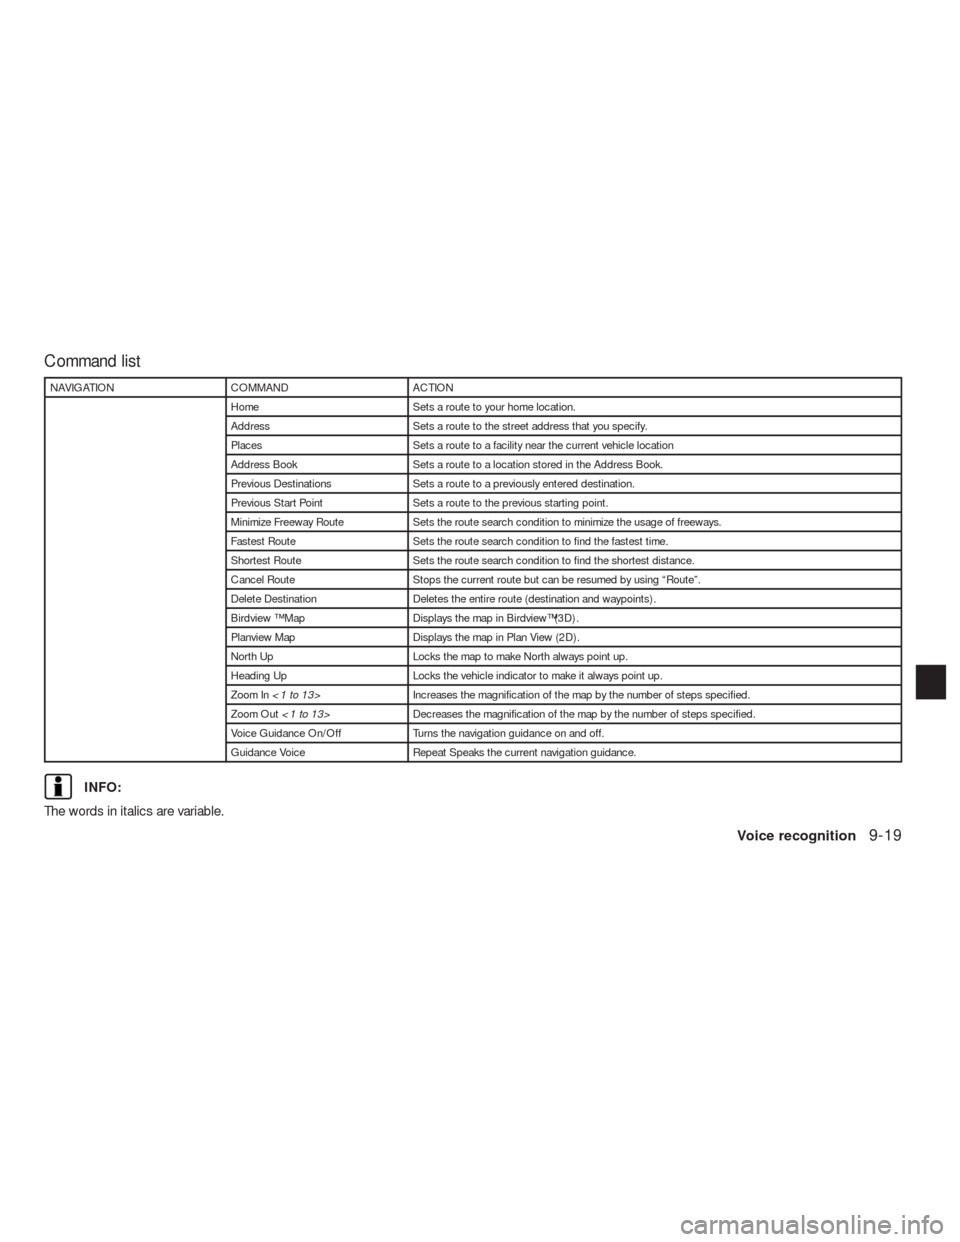 NISSAN ALTIMA HYBRID 2010 L32A / 4.G Navigation Manual, Page 252